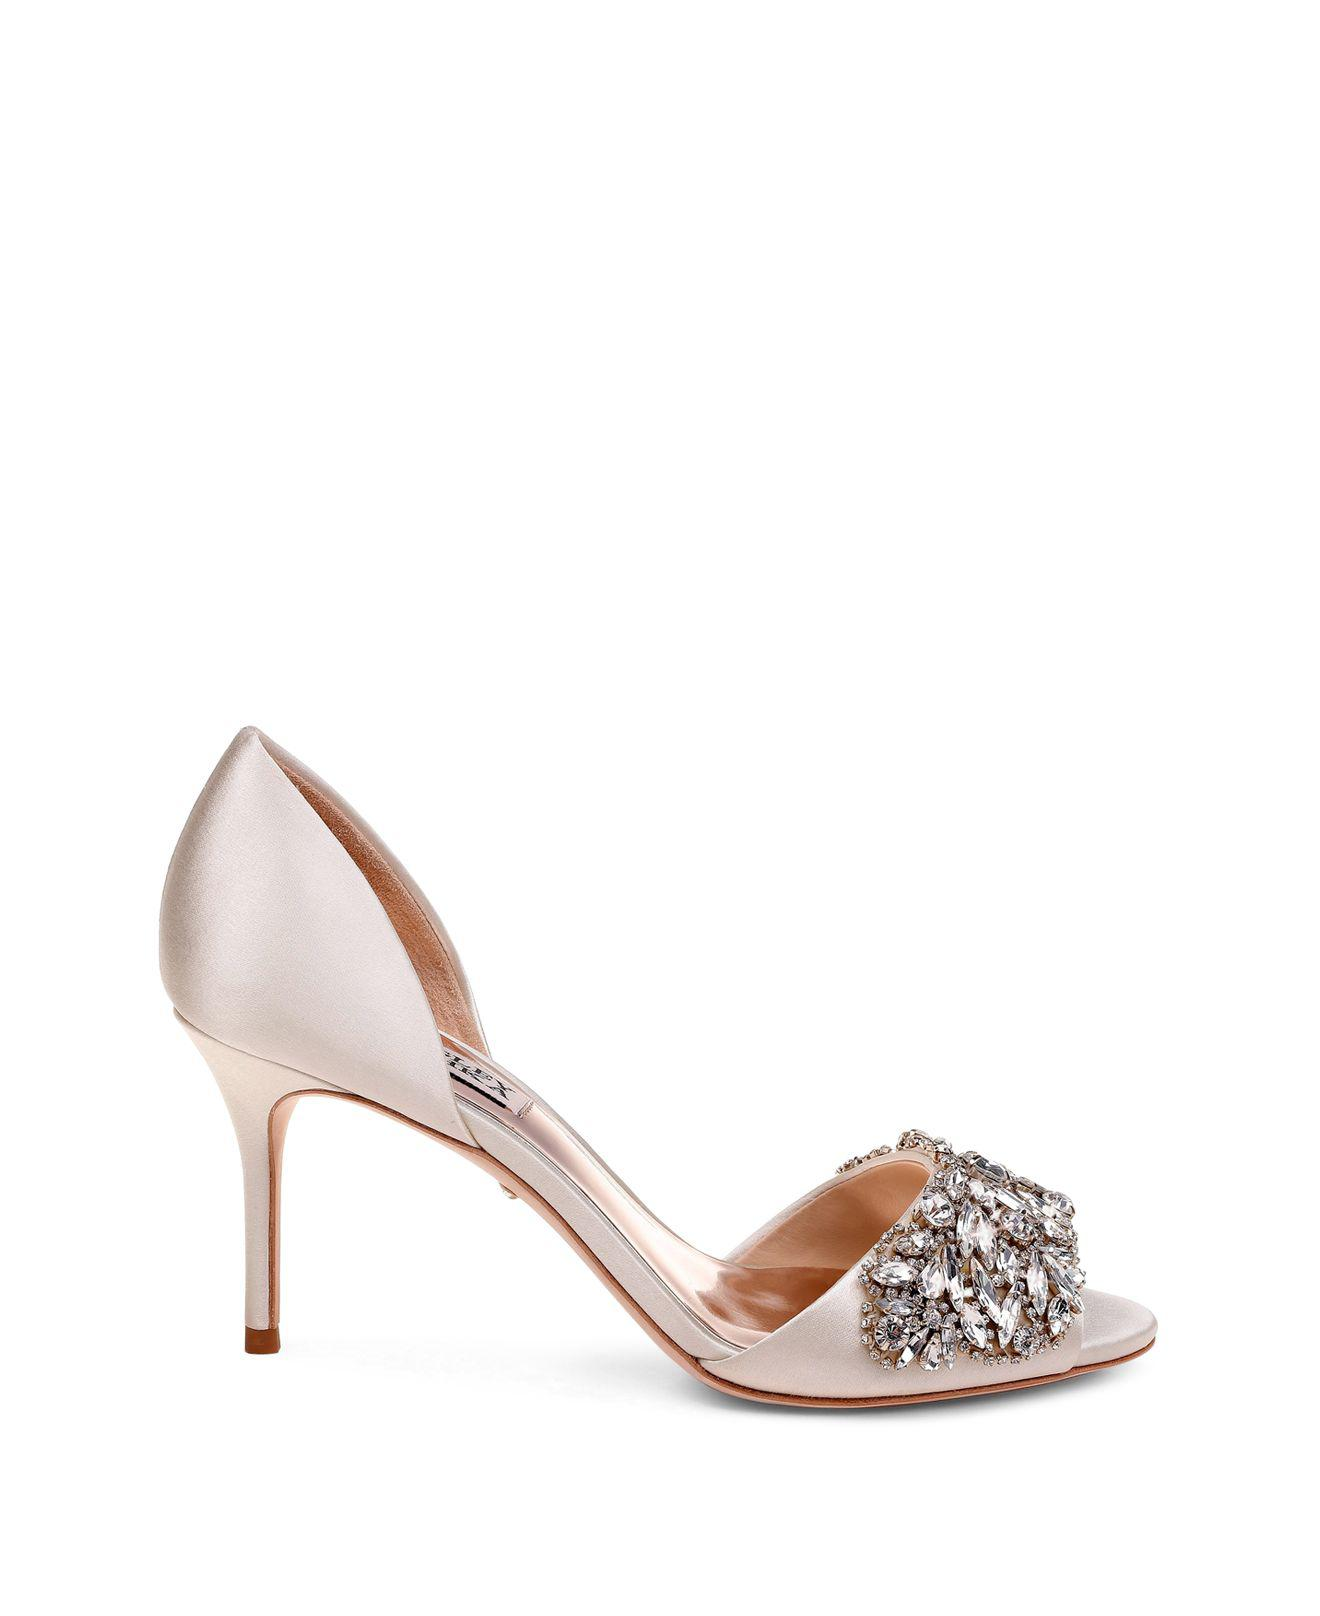 Badgley Mischka Women's Hansen Embellished Satin d'Orsay High-Heel Pumps